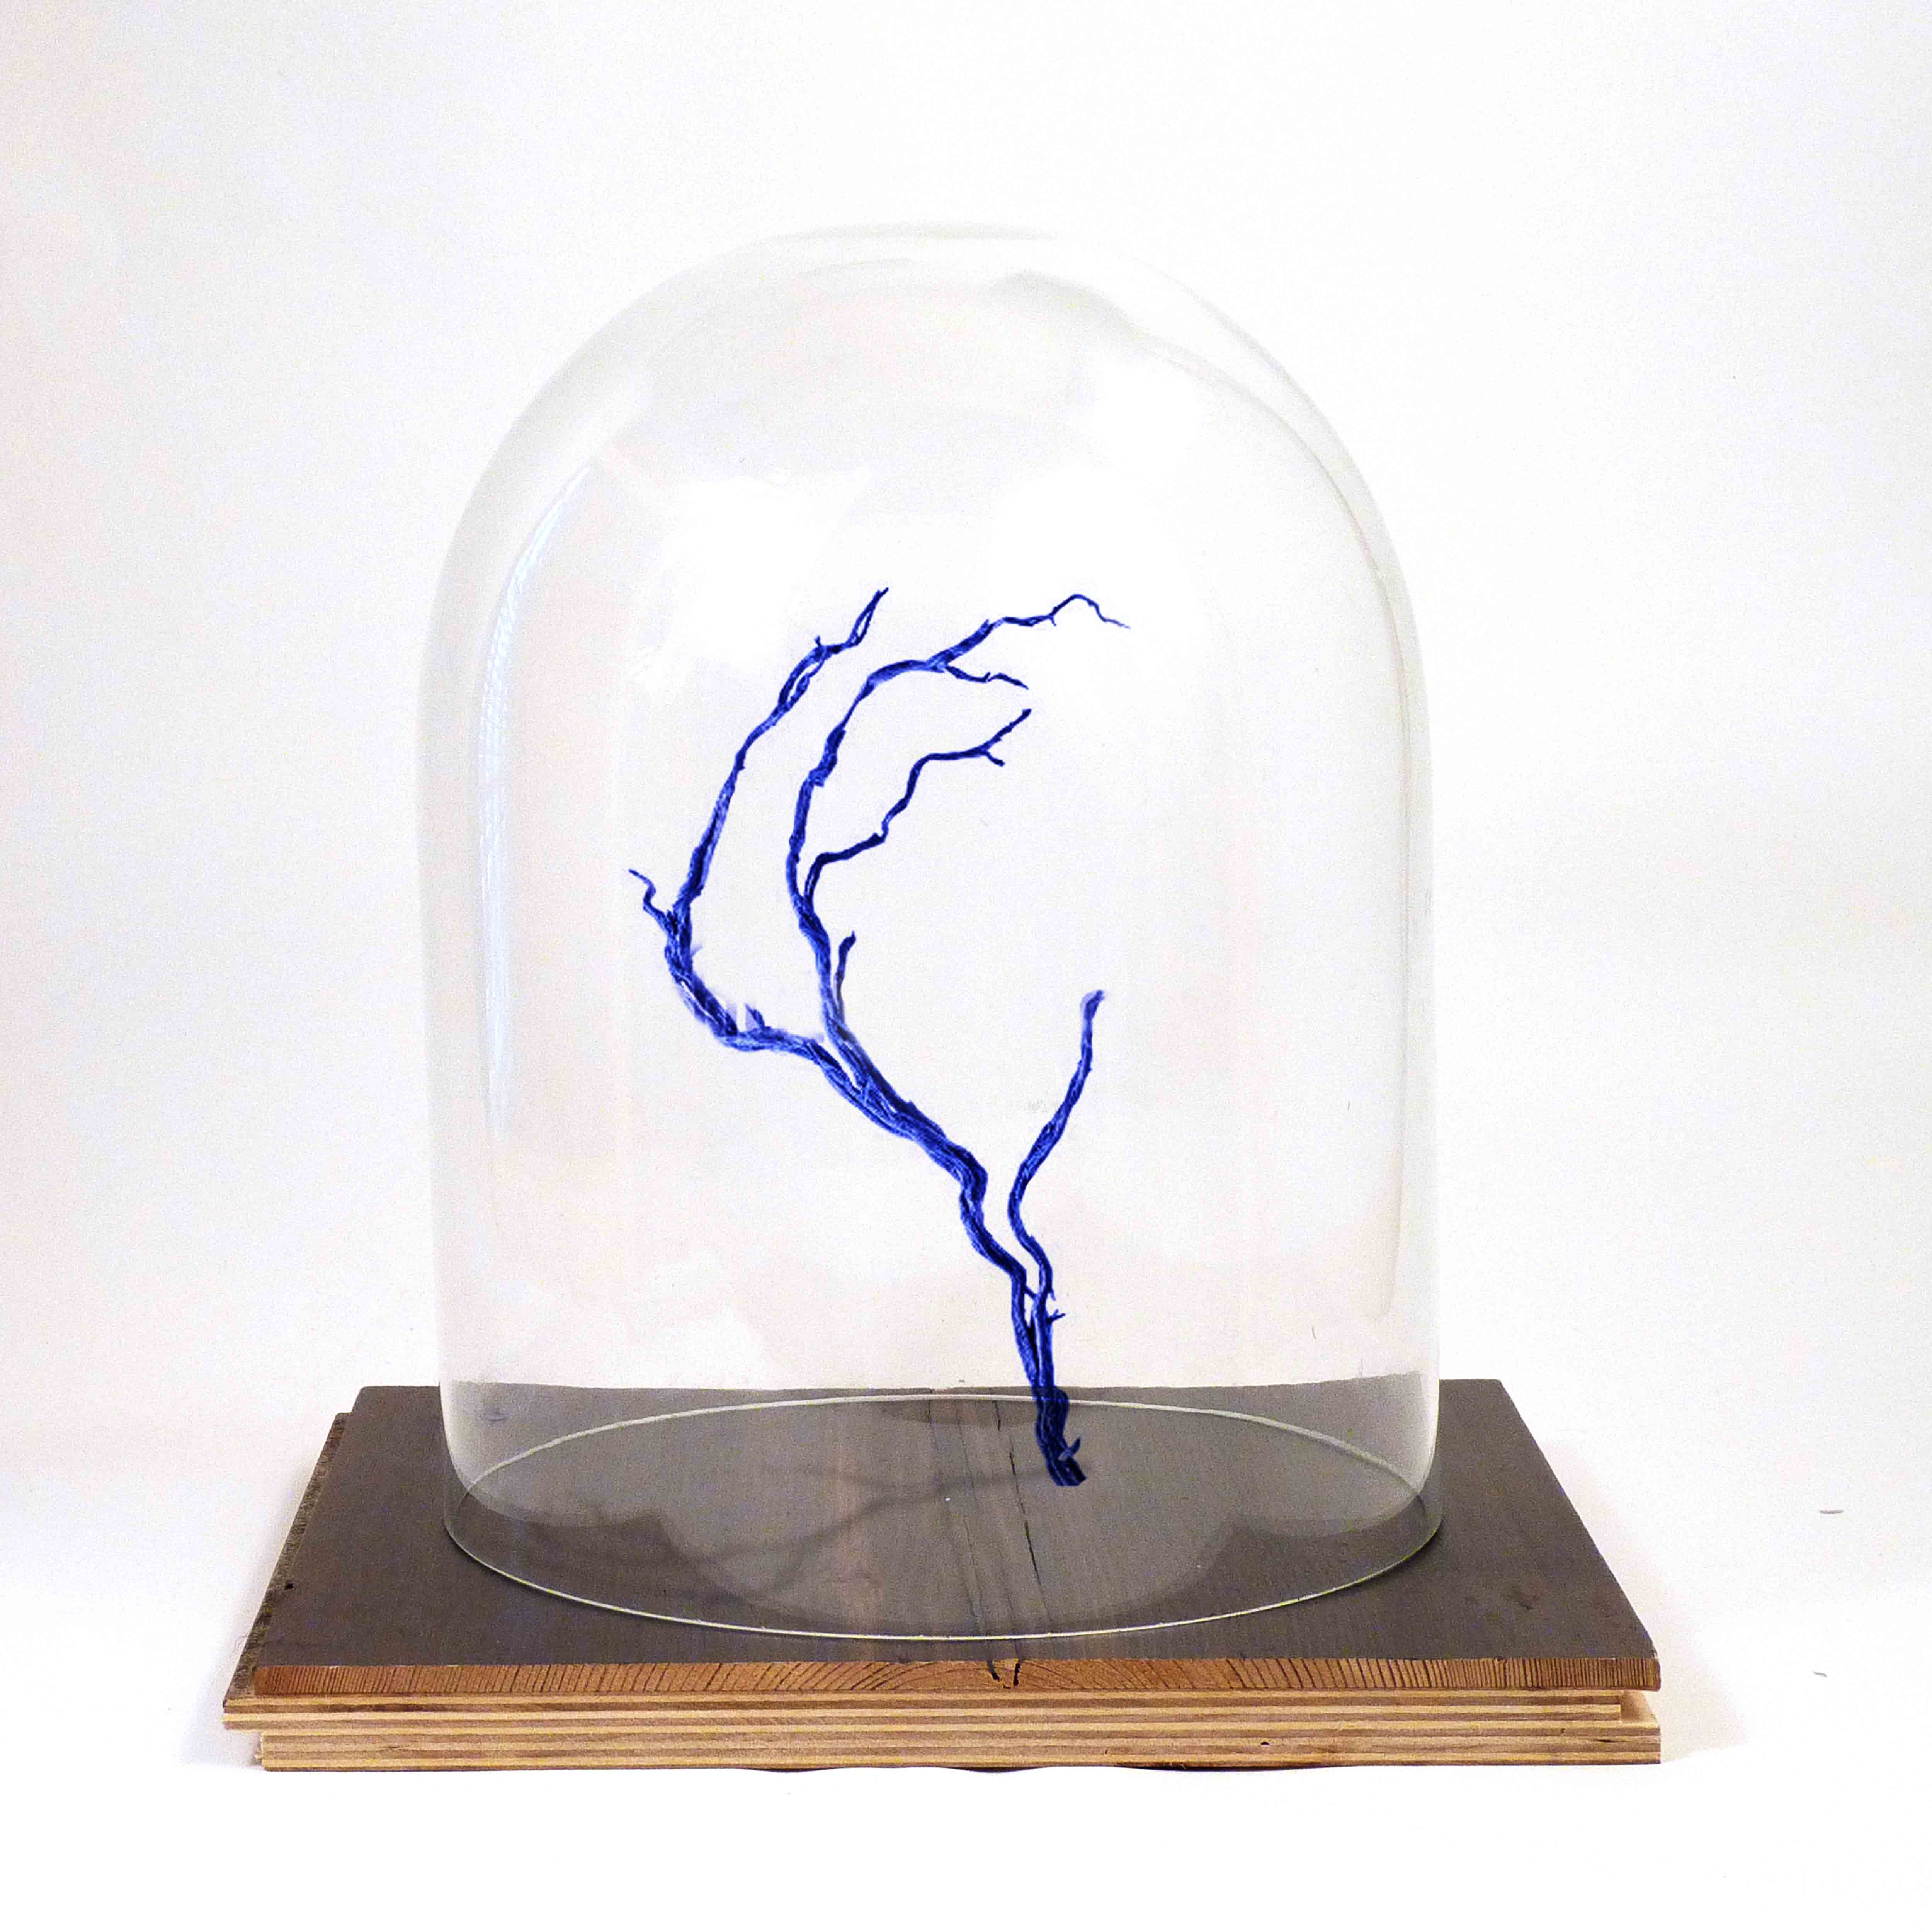 012 BELL JAR WITH BLUE BRANCH